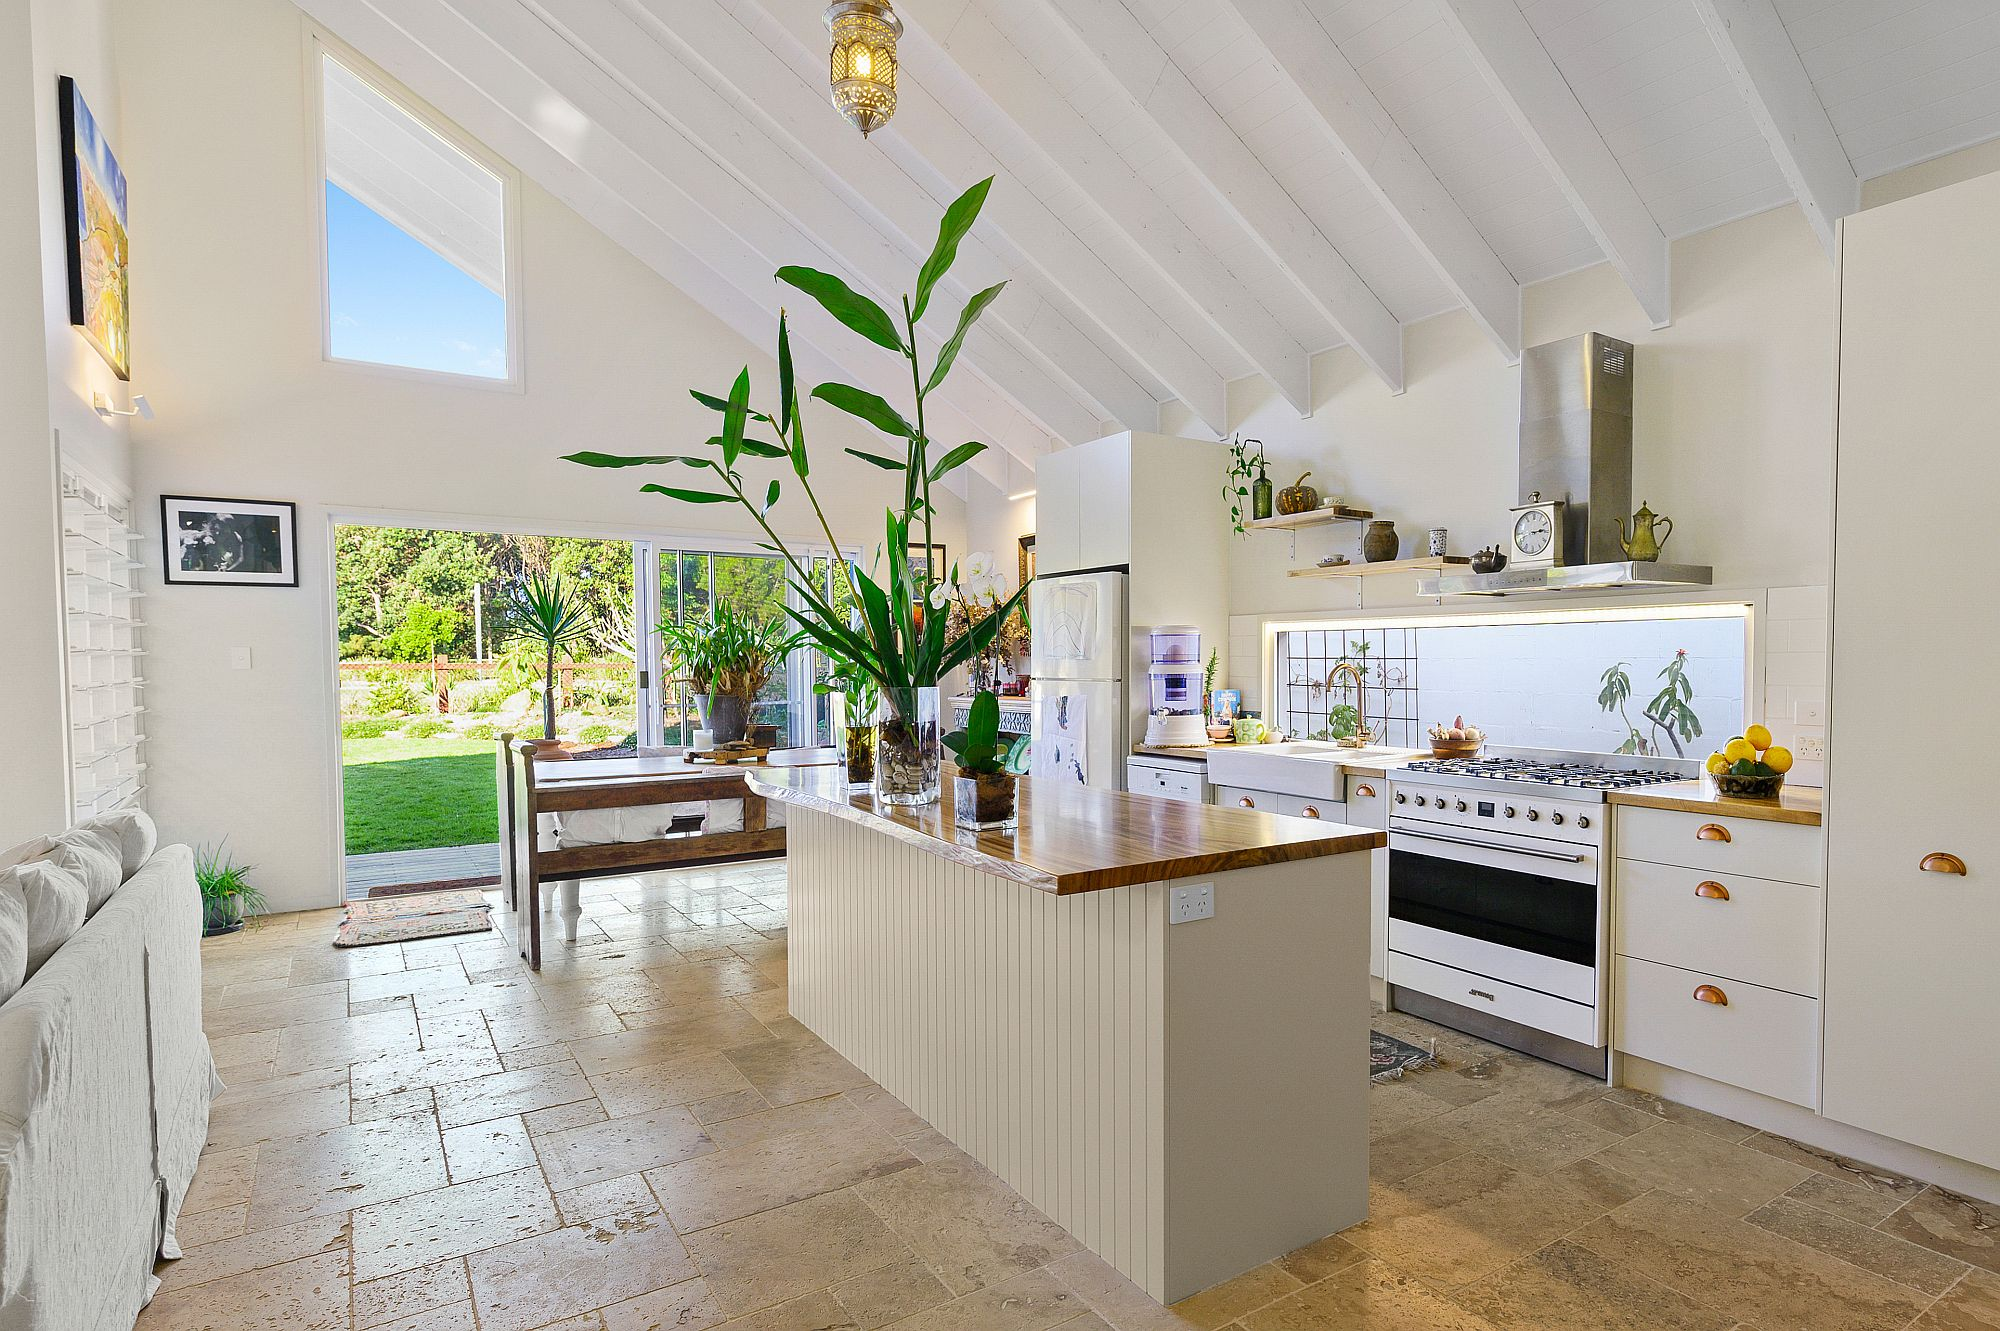 Subtle-use-of-green-and-yellow-in-the-white-kitchen-with-ample-natural-light